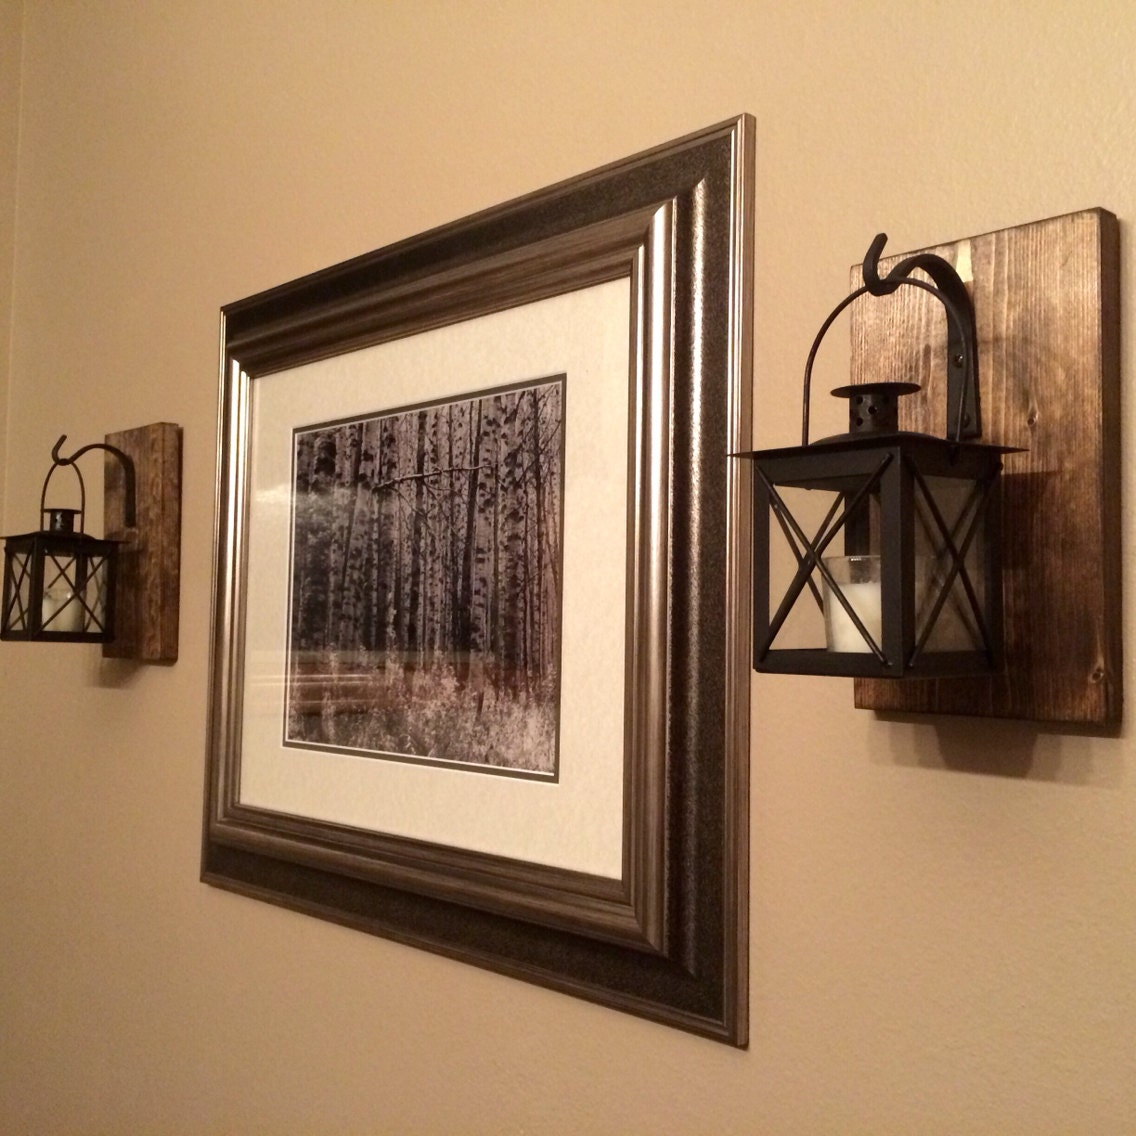 Bathroom Wall Decor Etsy : Lantern set wall decorrustic bathroom decor housewarming